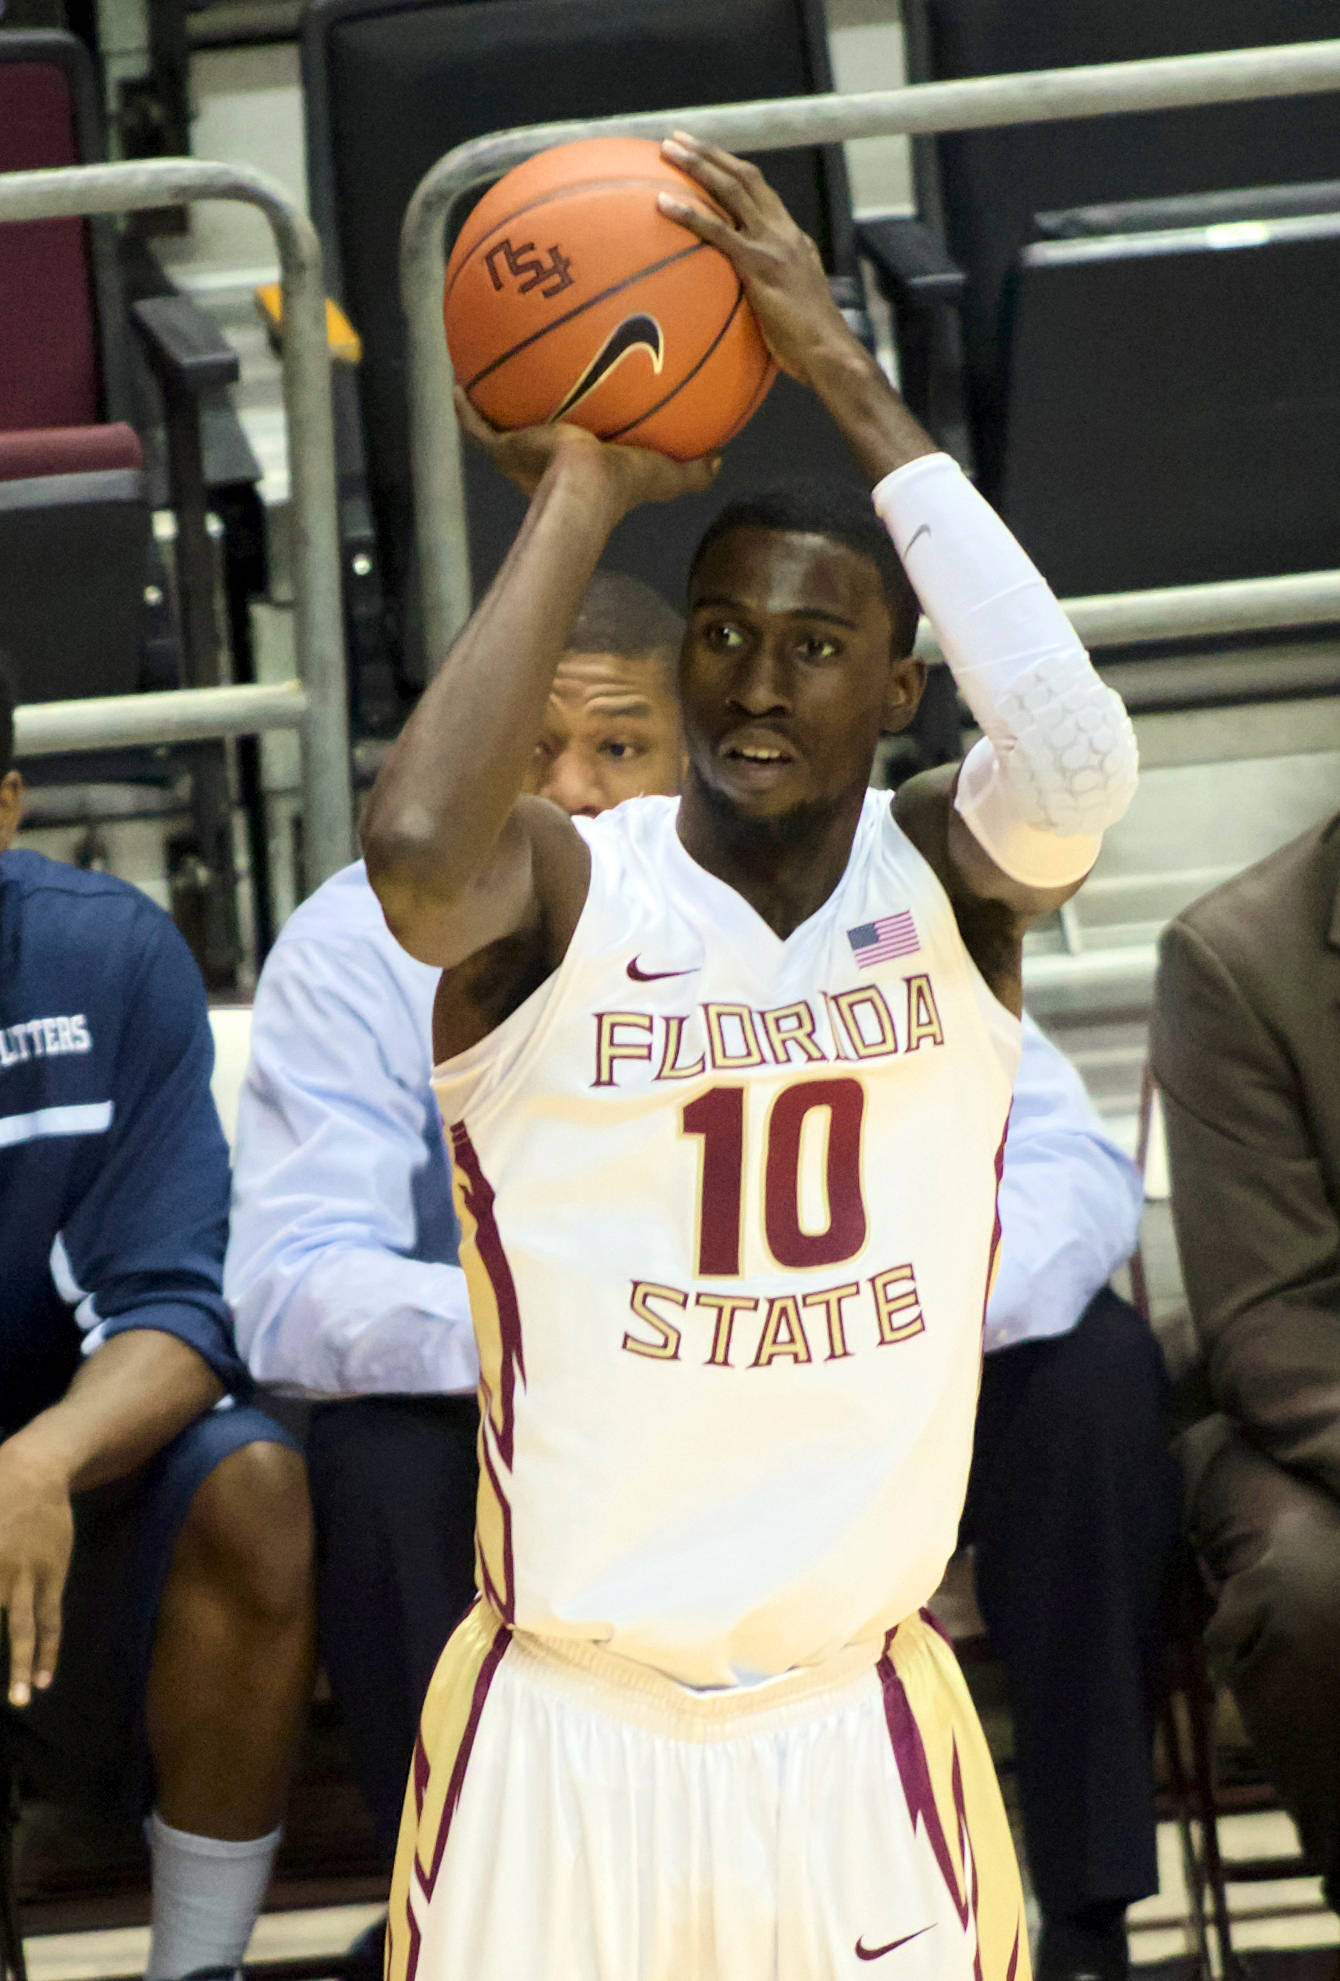 Okaro White (10), FSU vs Lincoln Memorial, 10/28/12. (Photo by Steve Musco)